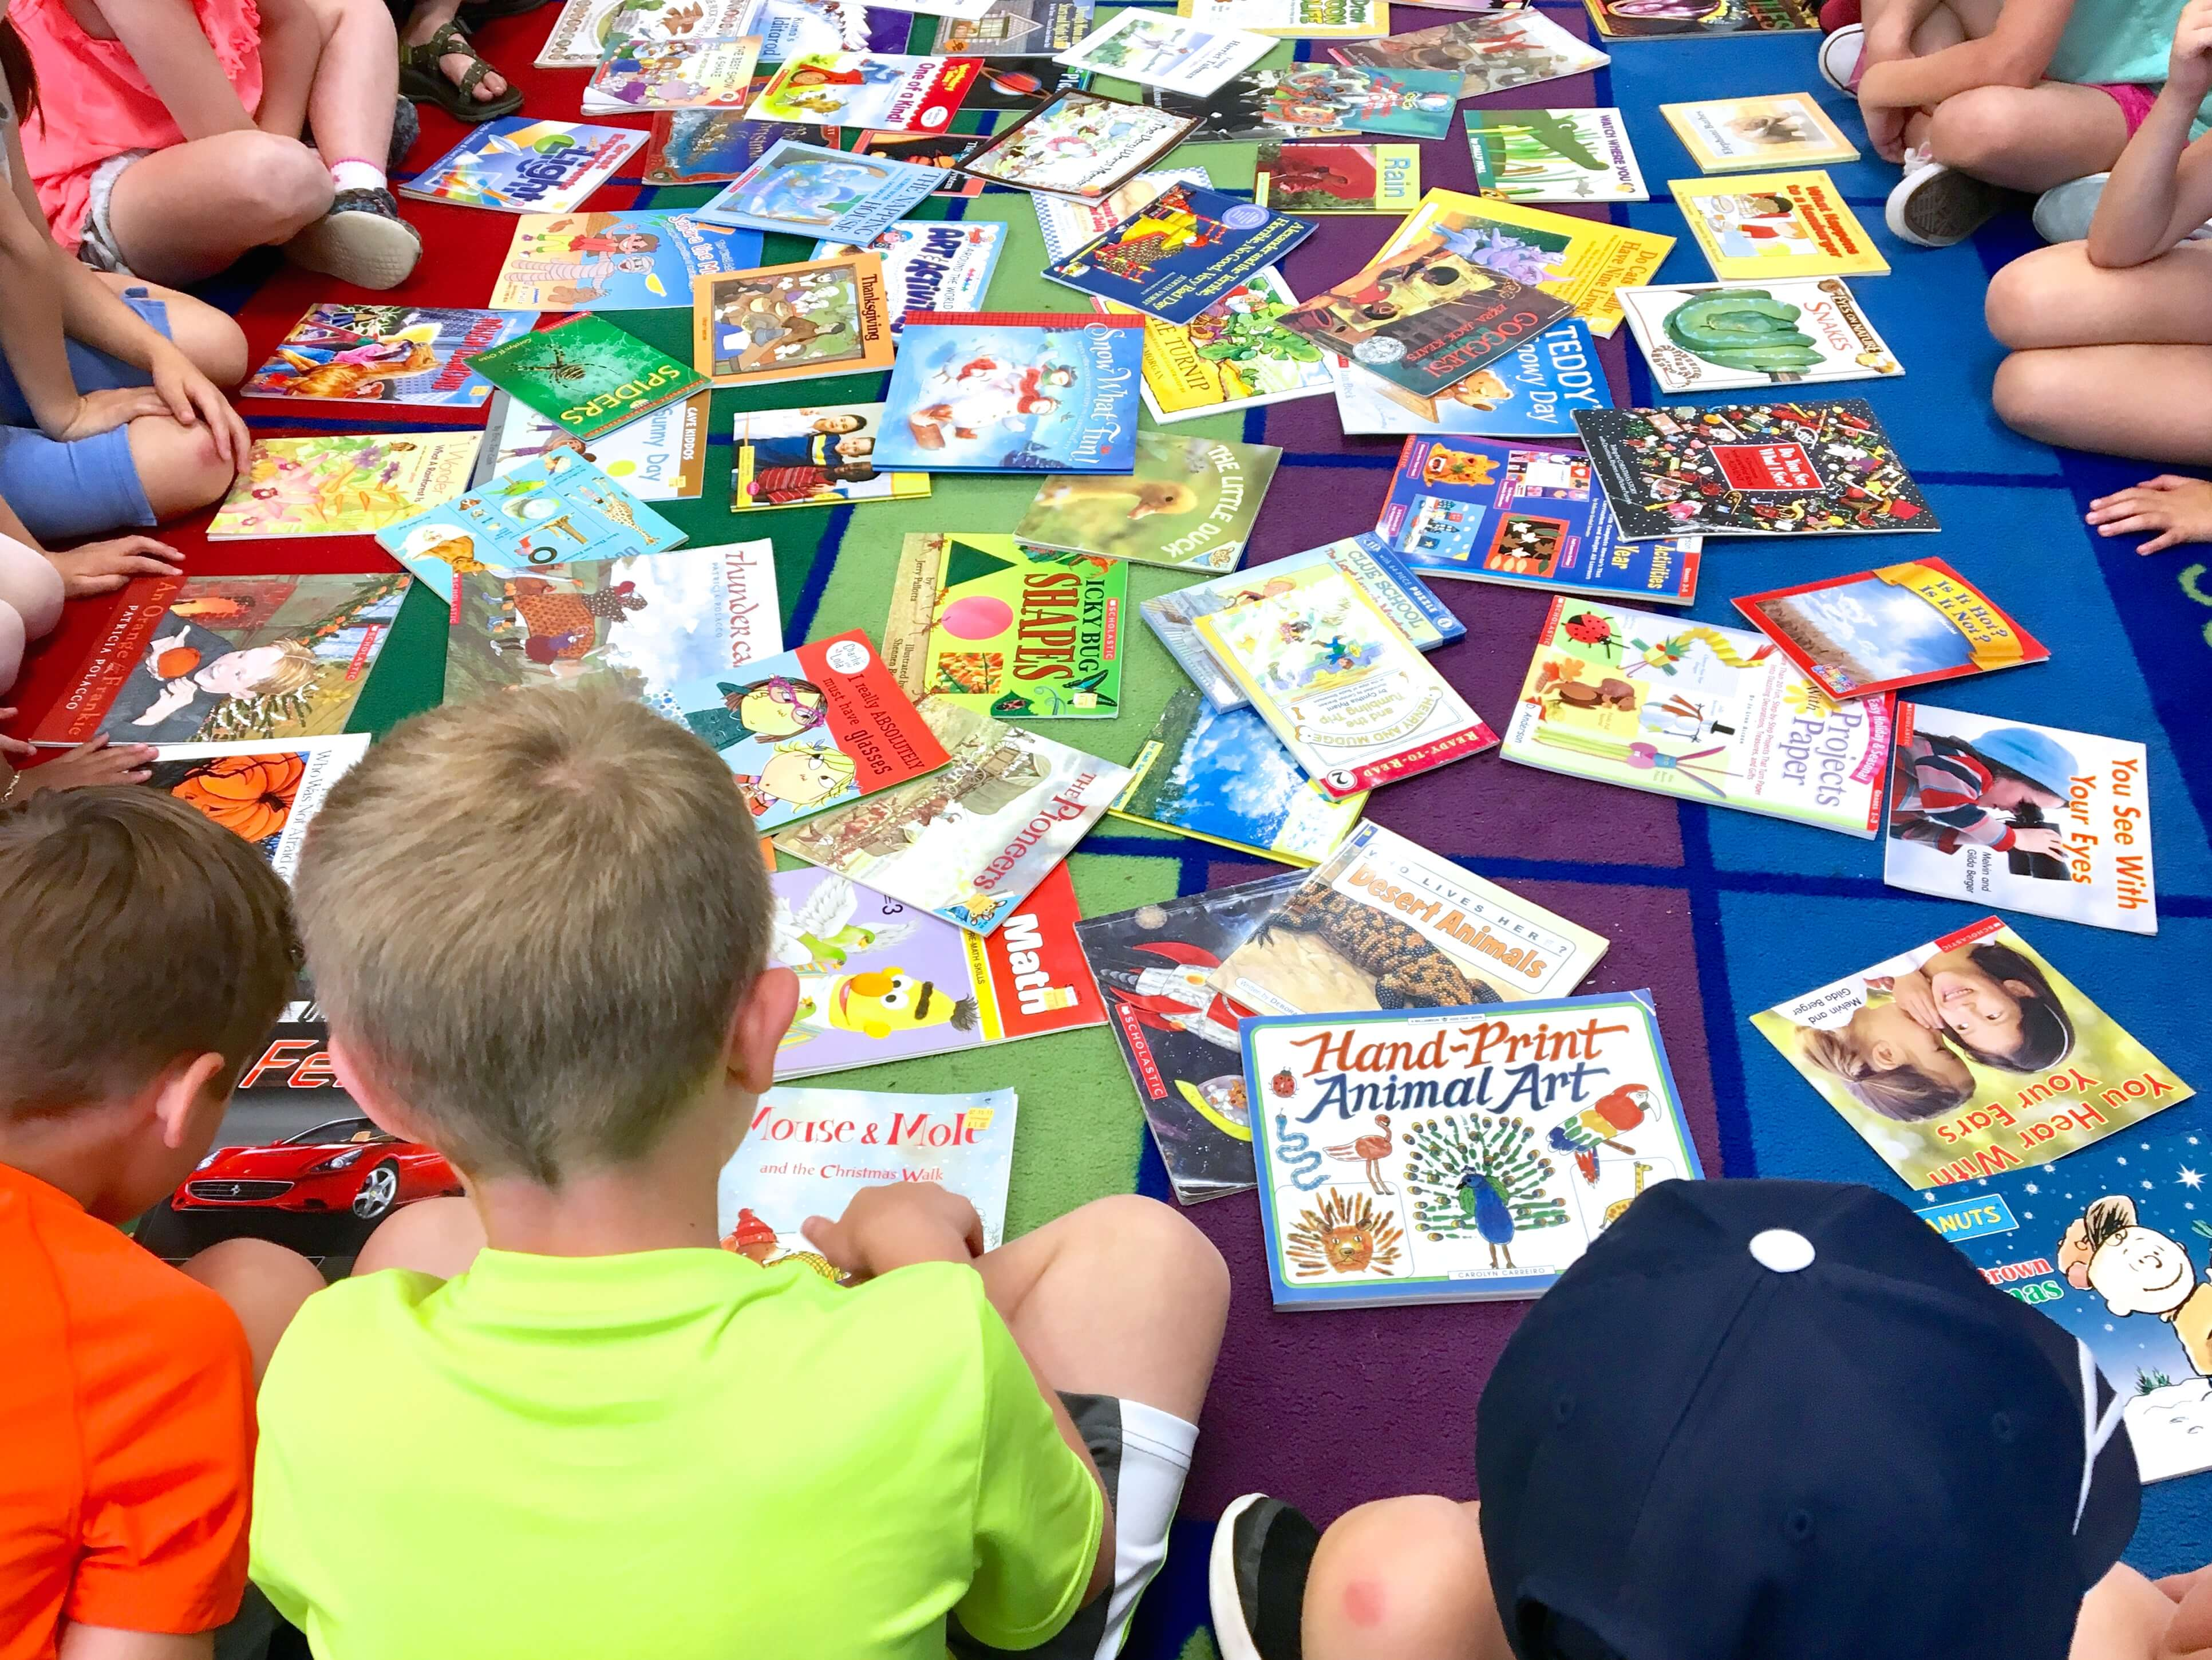 The books are books students wants to read and can be read by themselves 2ef2840841626